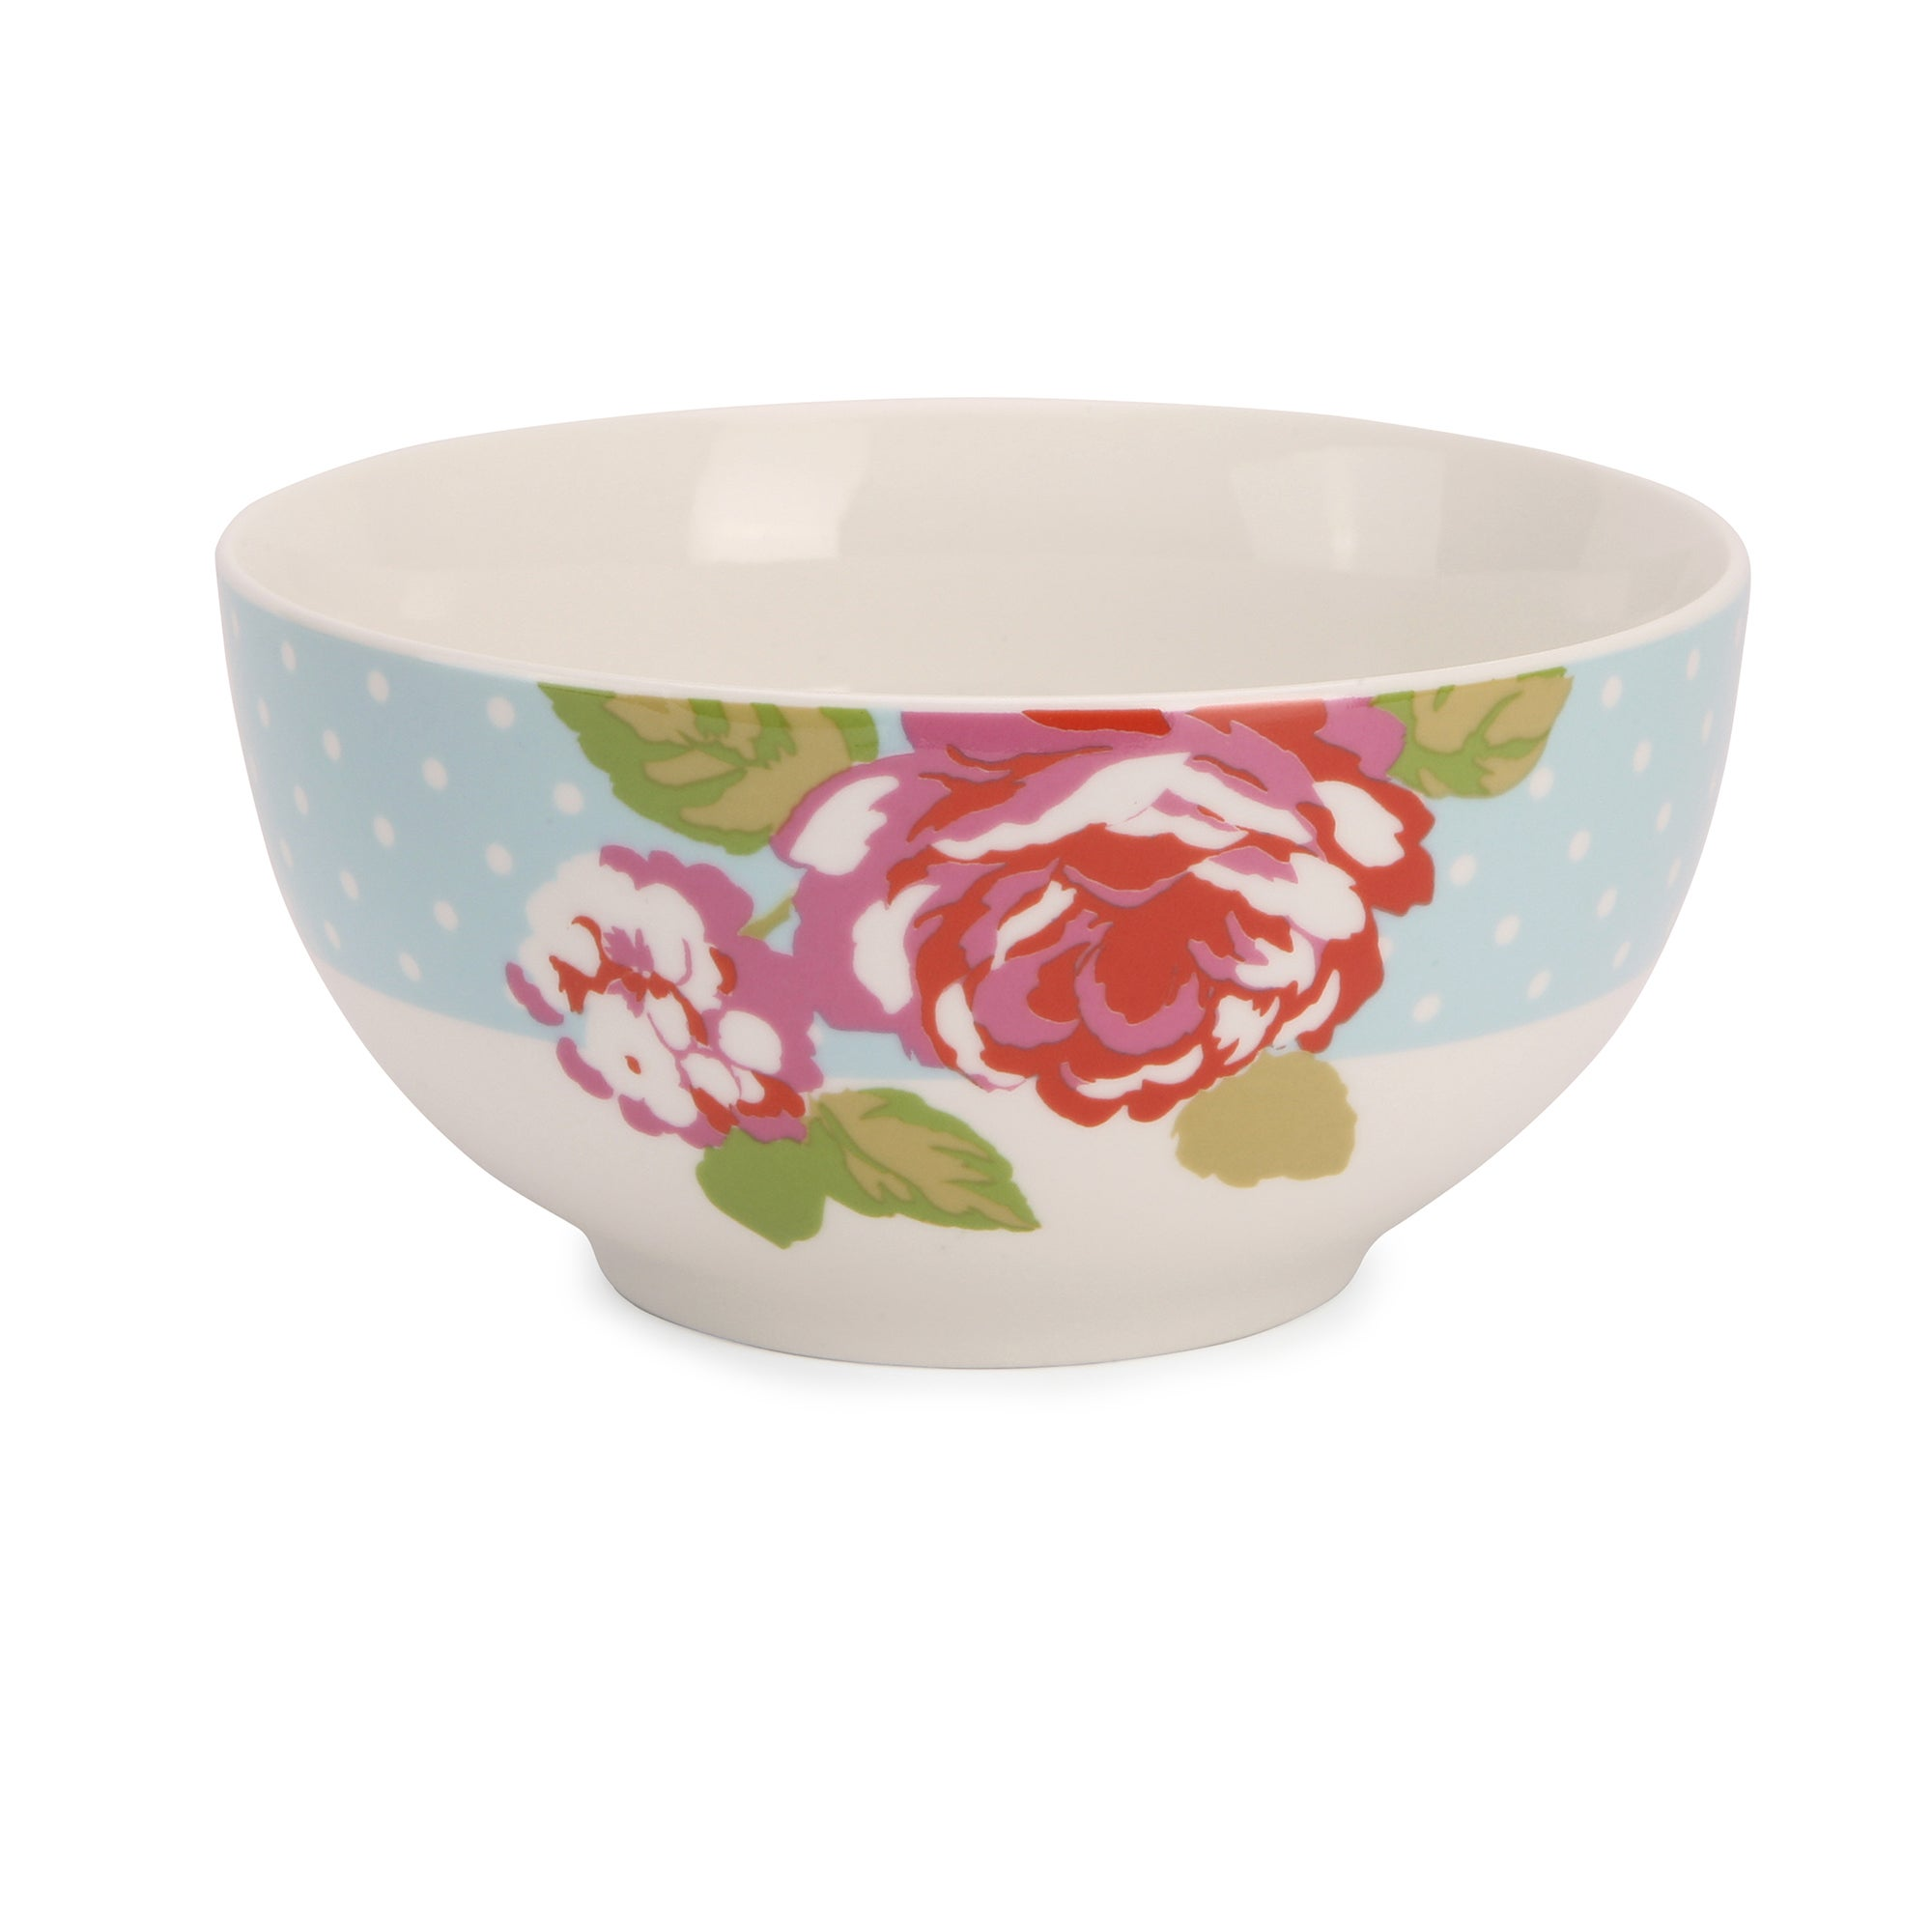 Rose and Ellis Clarendon Collection Bowl